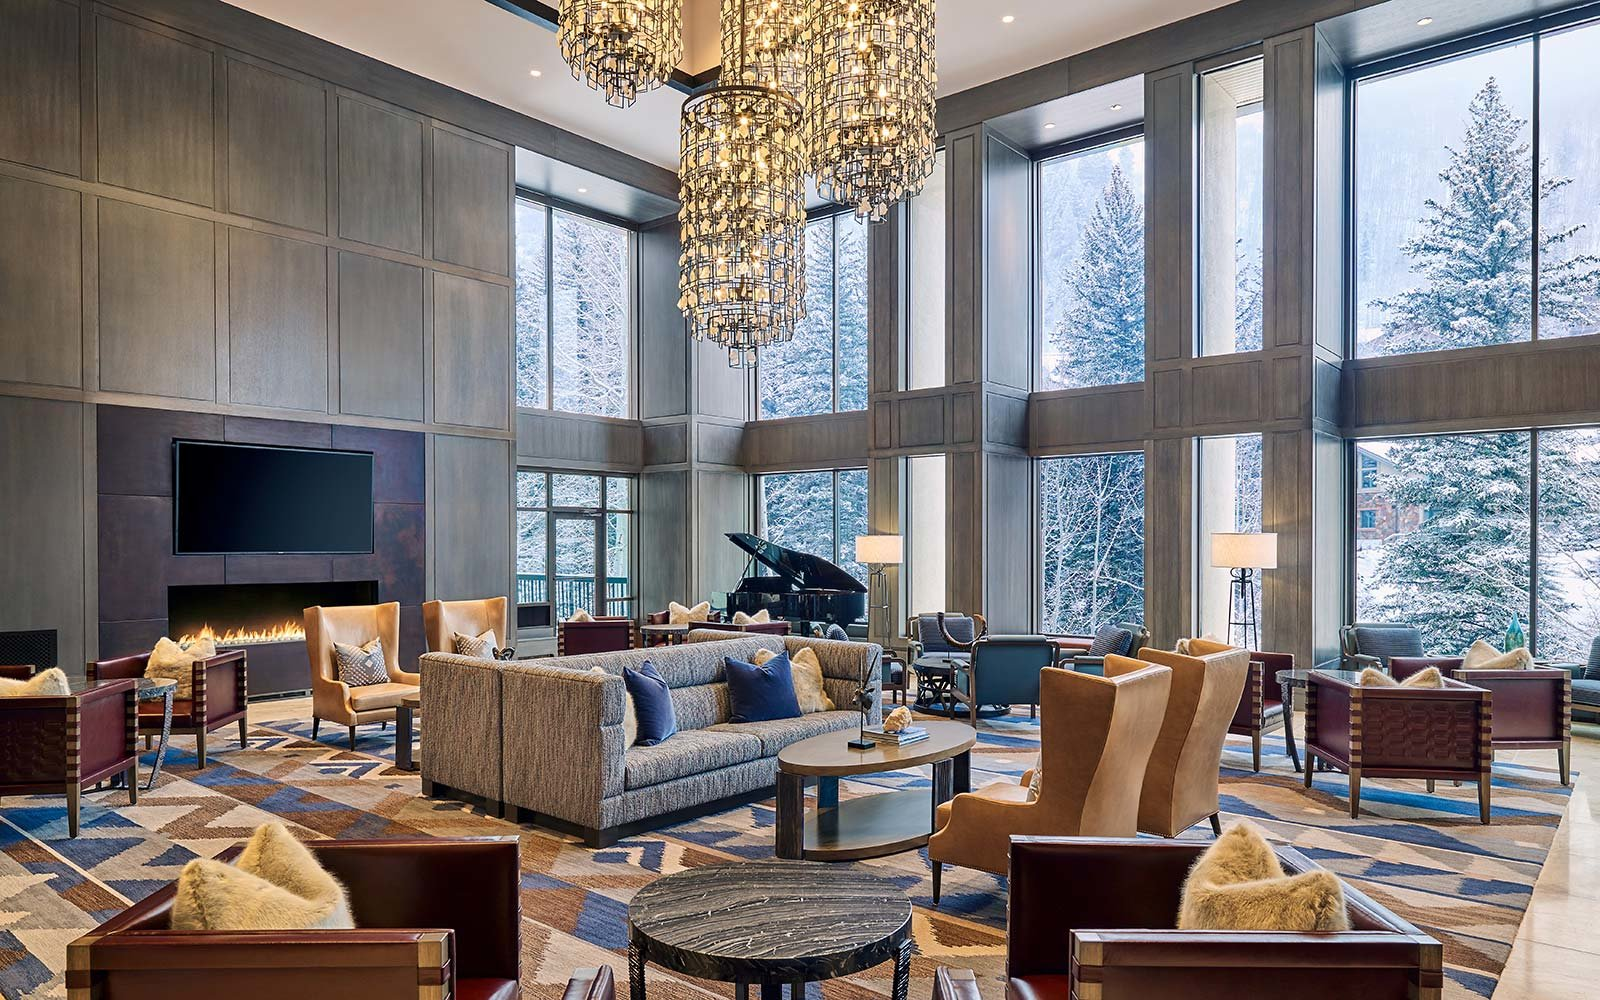 This Luxury Ski Resort In Vail Has Its Own S Mores Butler